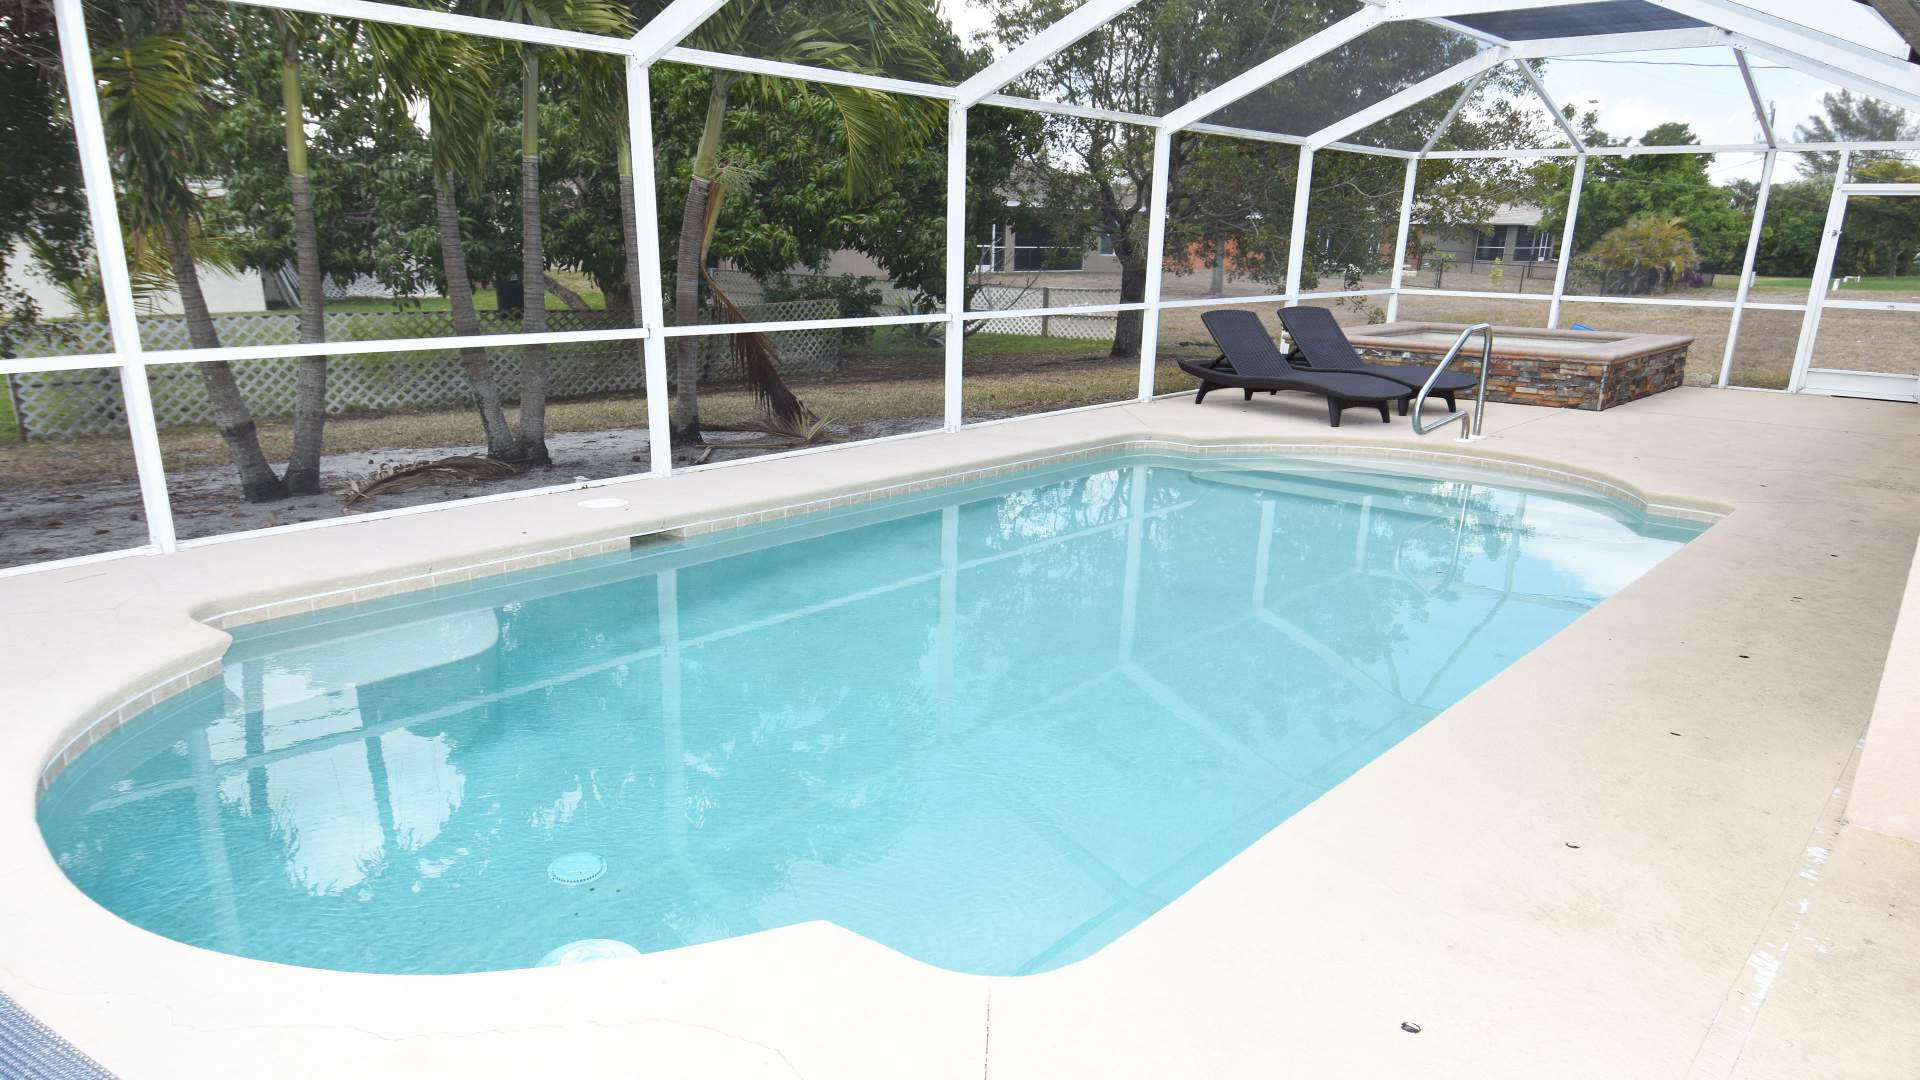 The pool and the separate spa can both be electrically heated